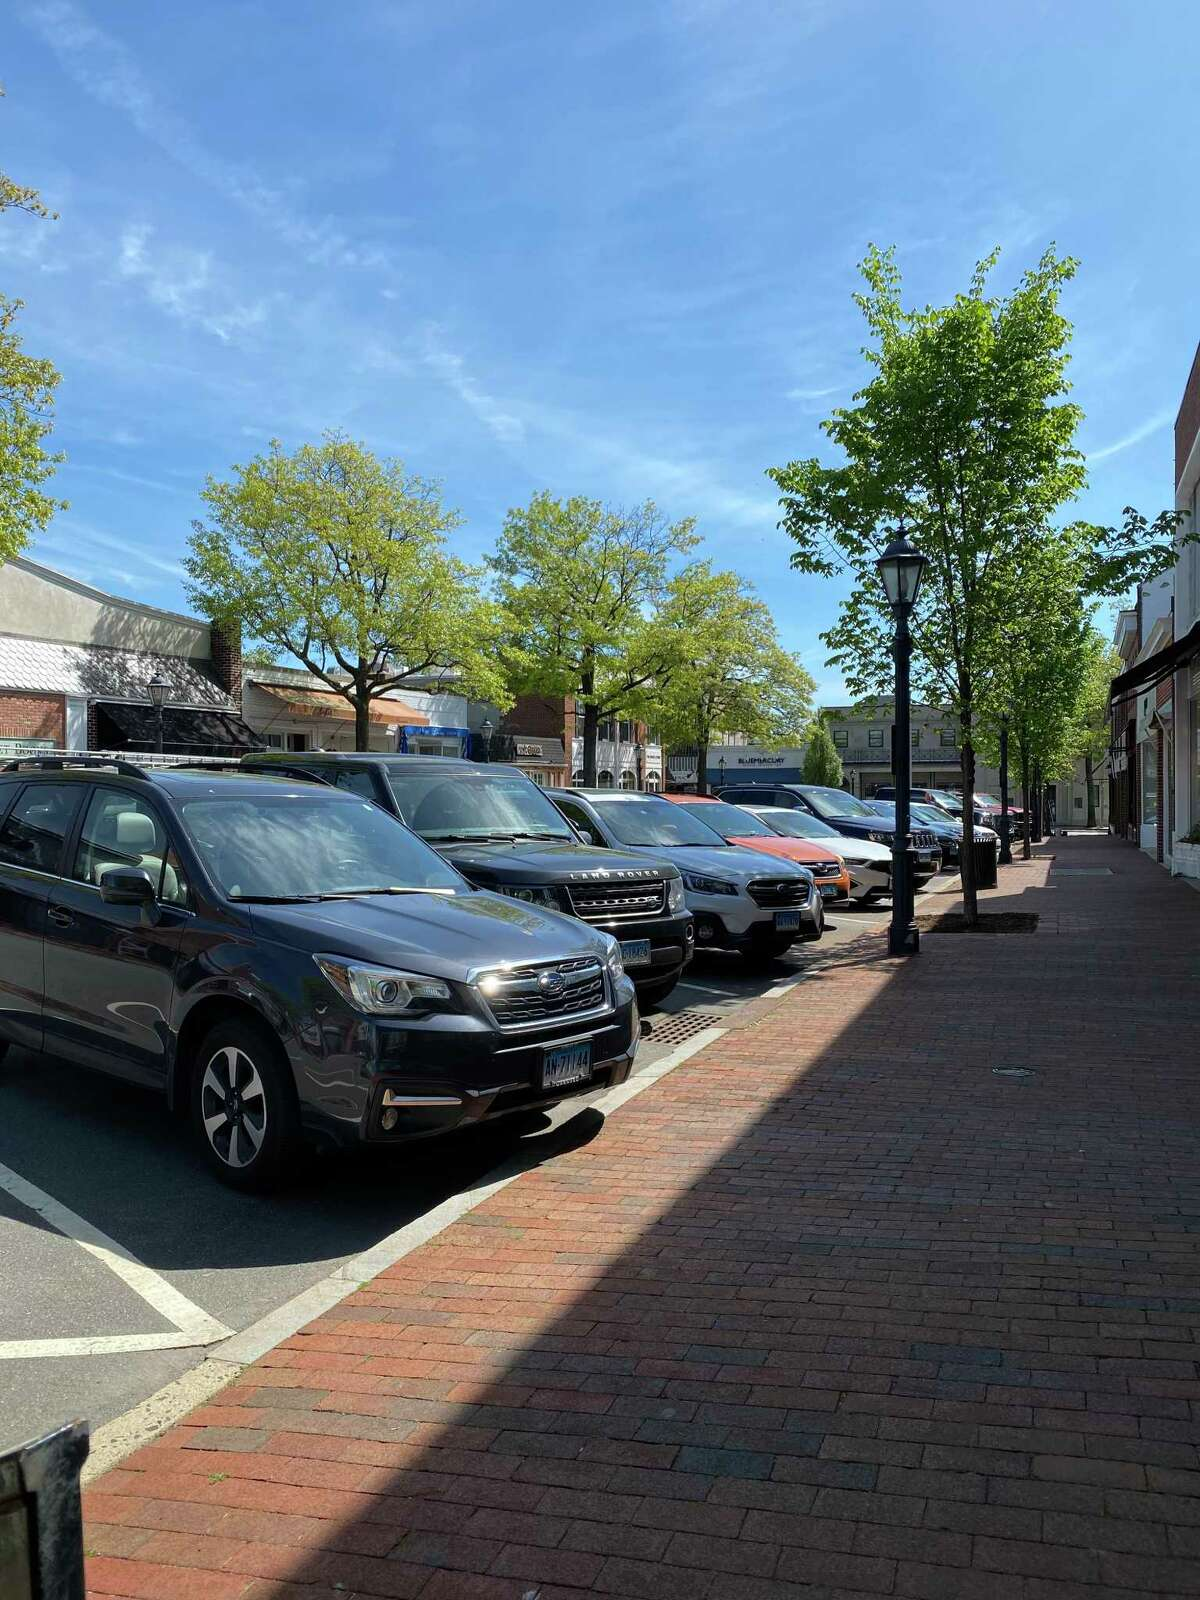 Since stores have re-opened up their interiors, and restaurants re-opened with outdoor dining in New Canaan, residents finding a place to put their vehicles has increased for business.